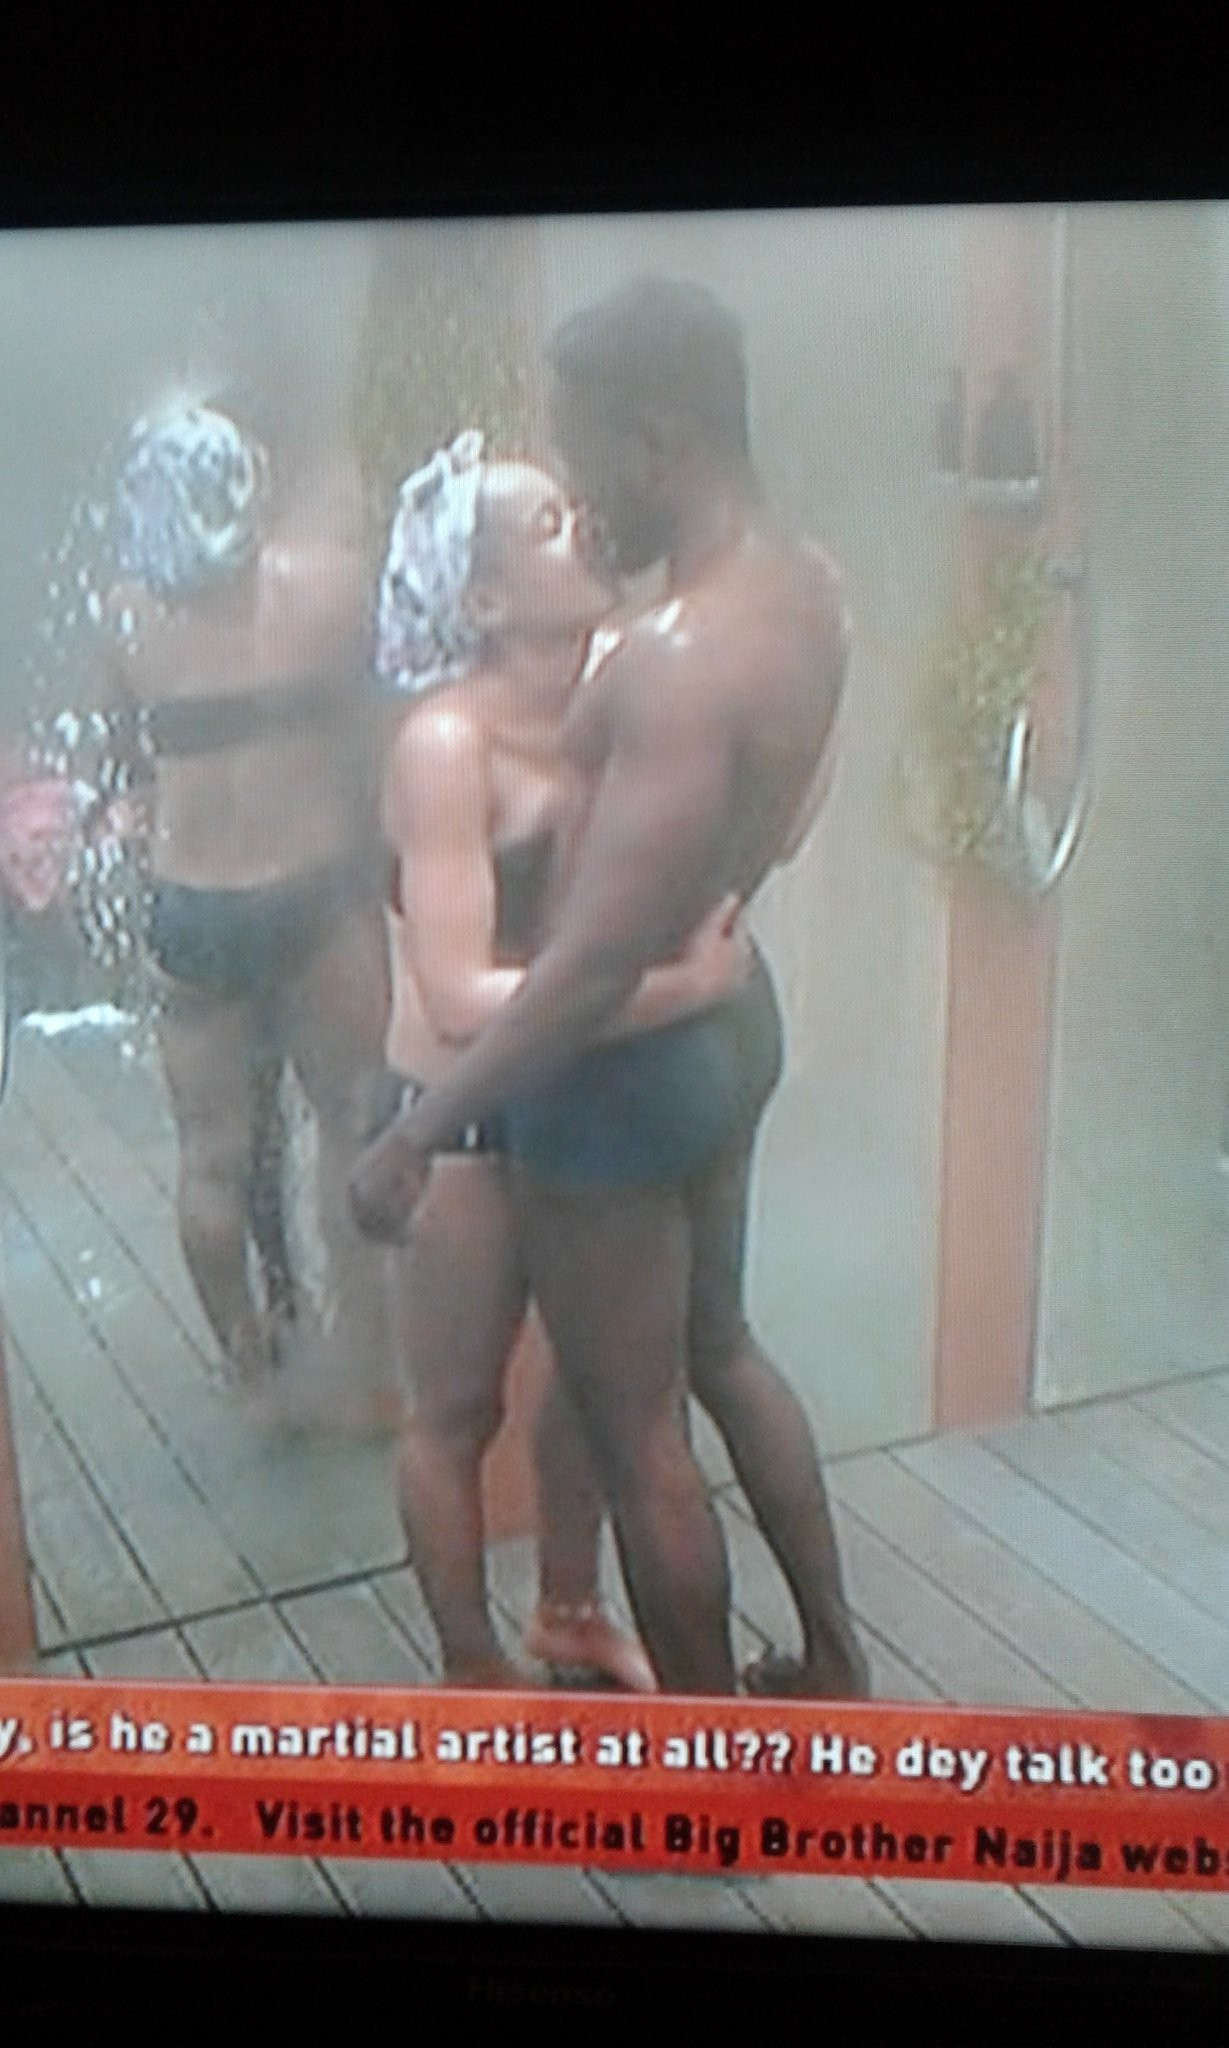 BBNaija 2018 housemates, Nina & Miracle kiss in the bathroom (photos/video)